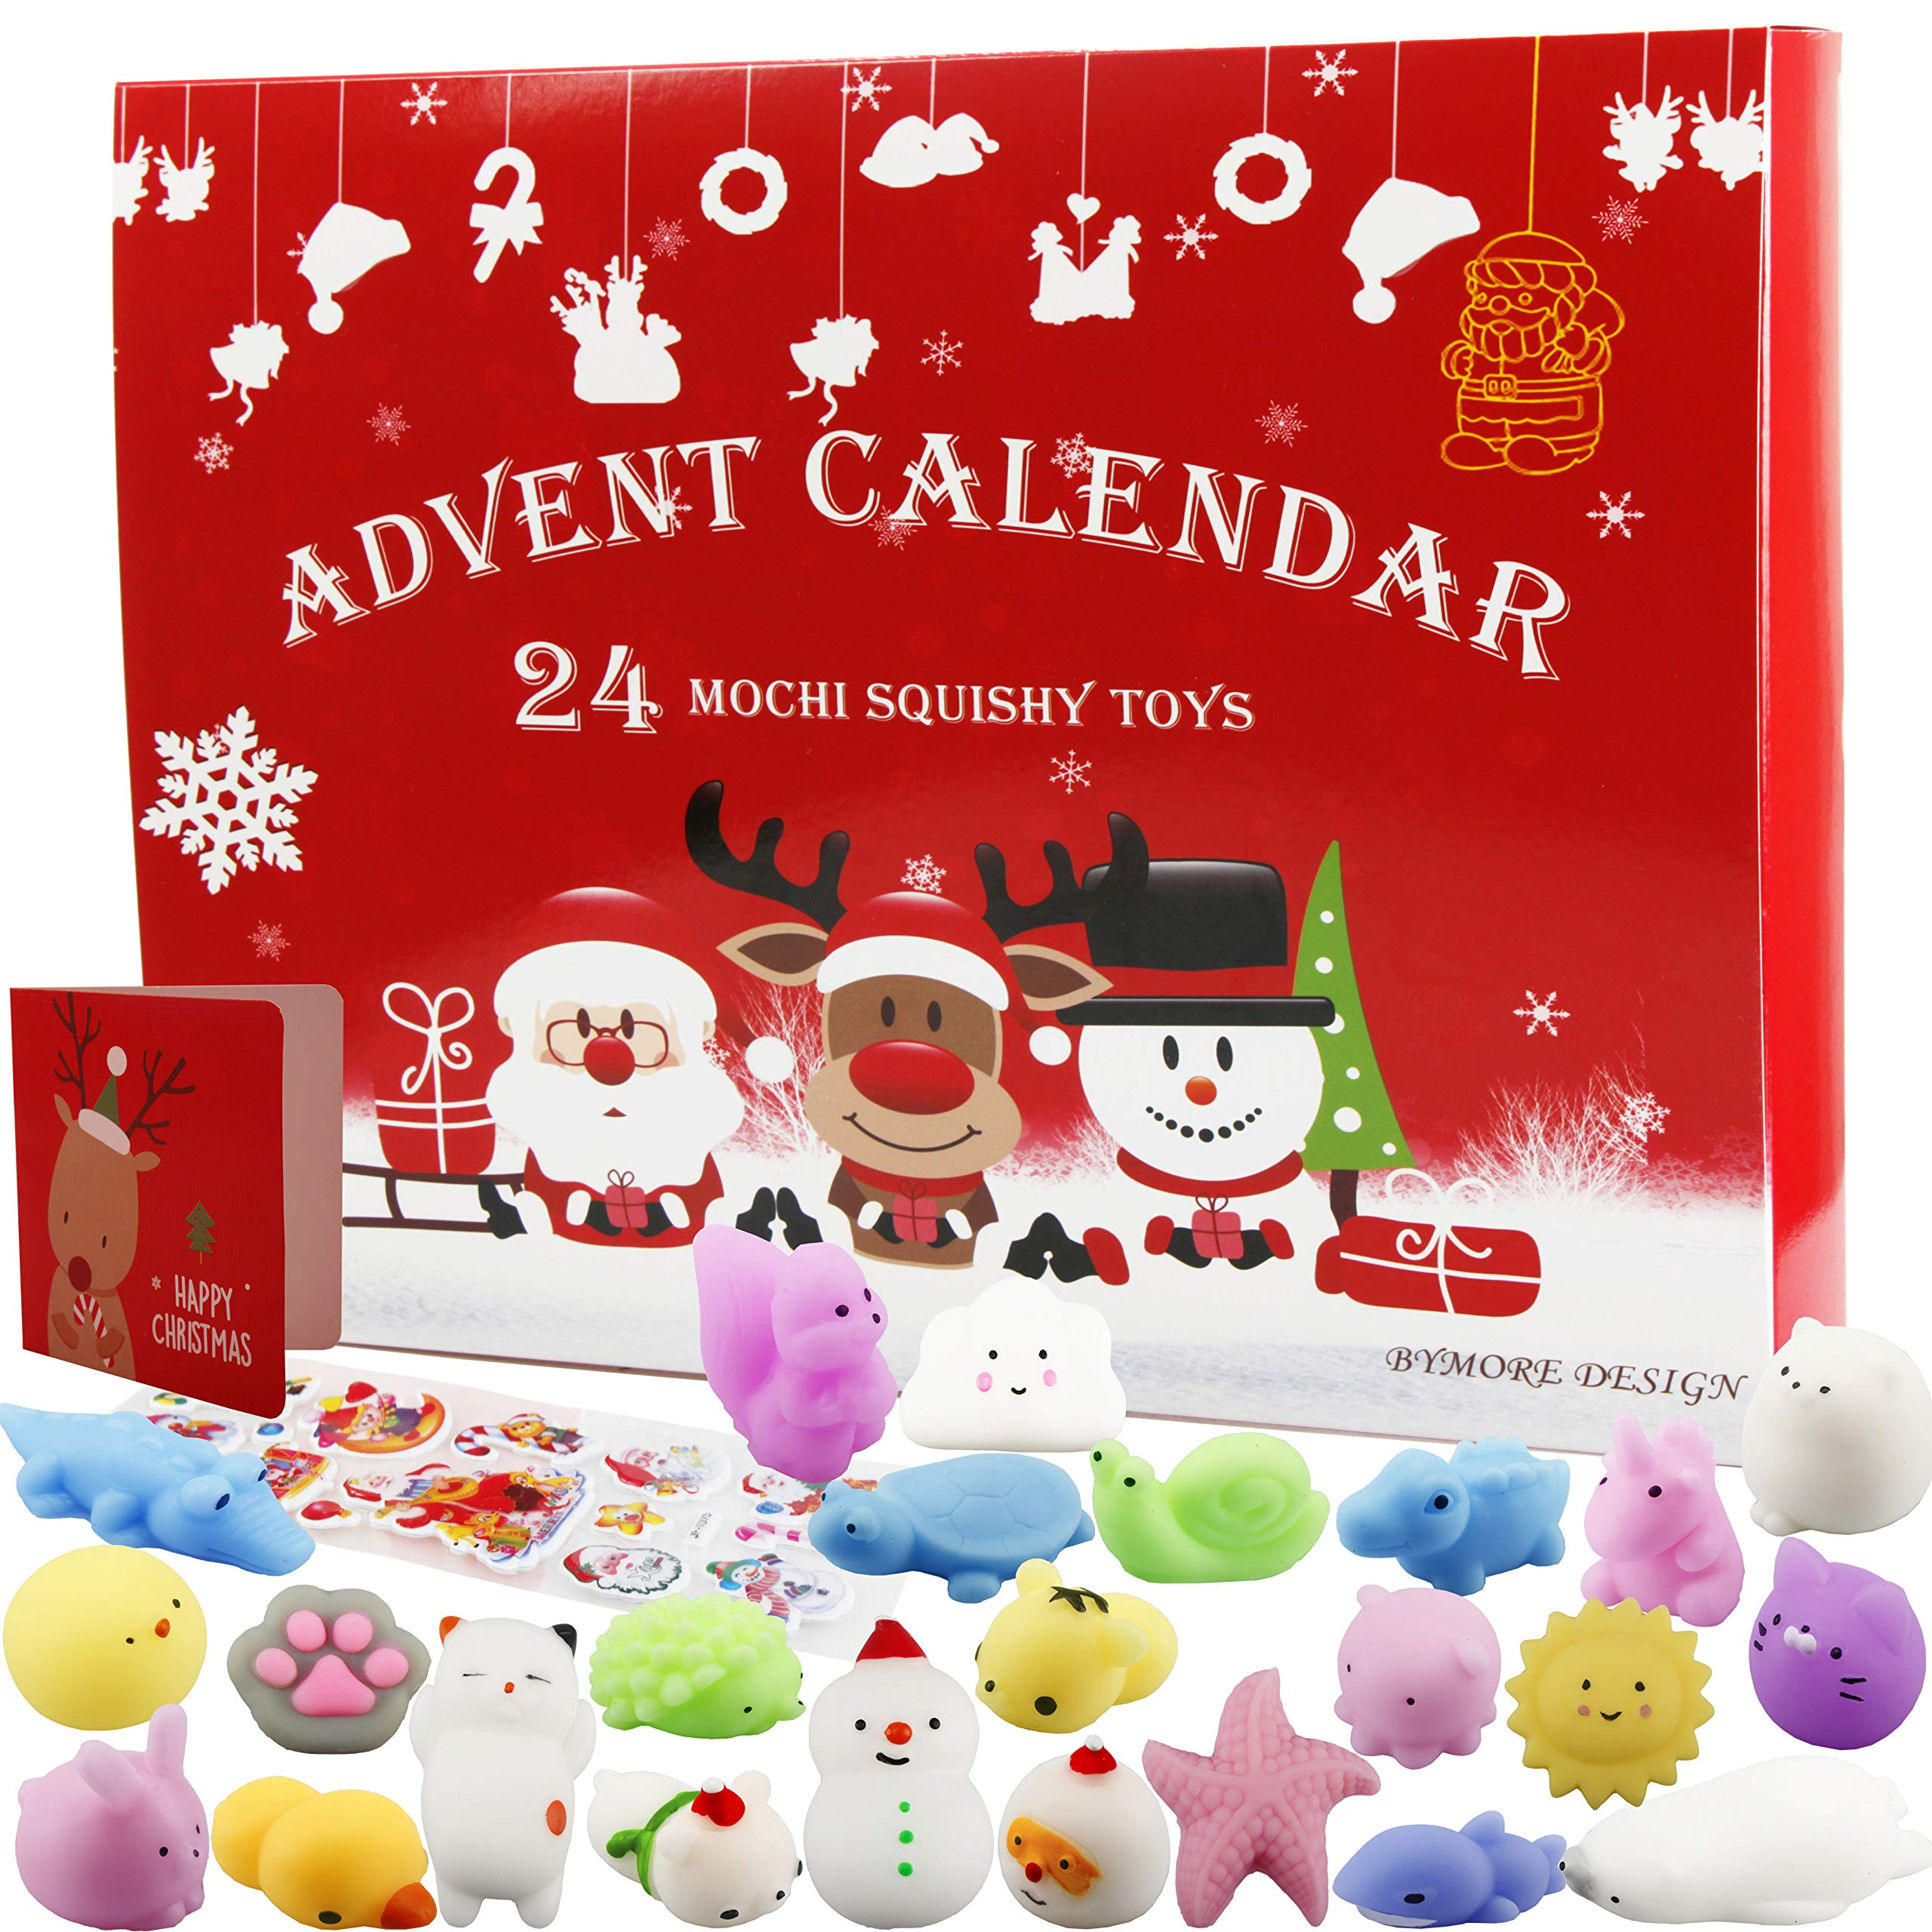 BYMORE 24 Pack Mochi Squishies Animals Advent Calender Mini Toys Stress Relief Squishies for Kids Adults 2019 Christmas Countdown Gifts by BYMORE